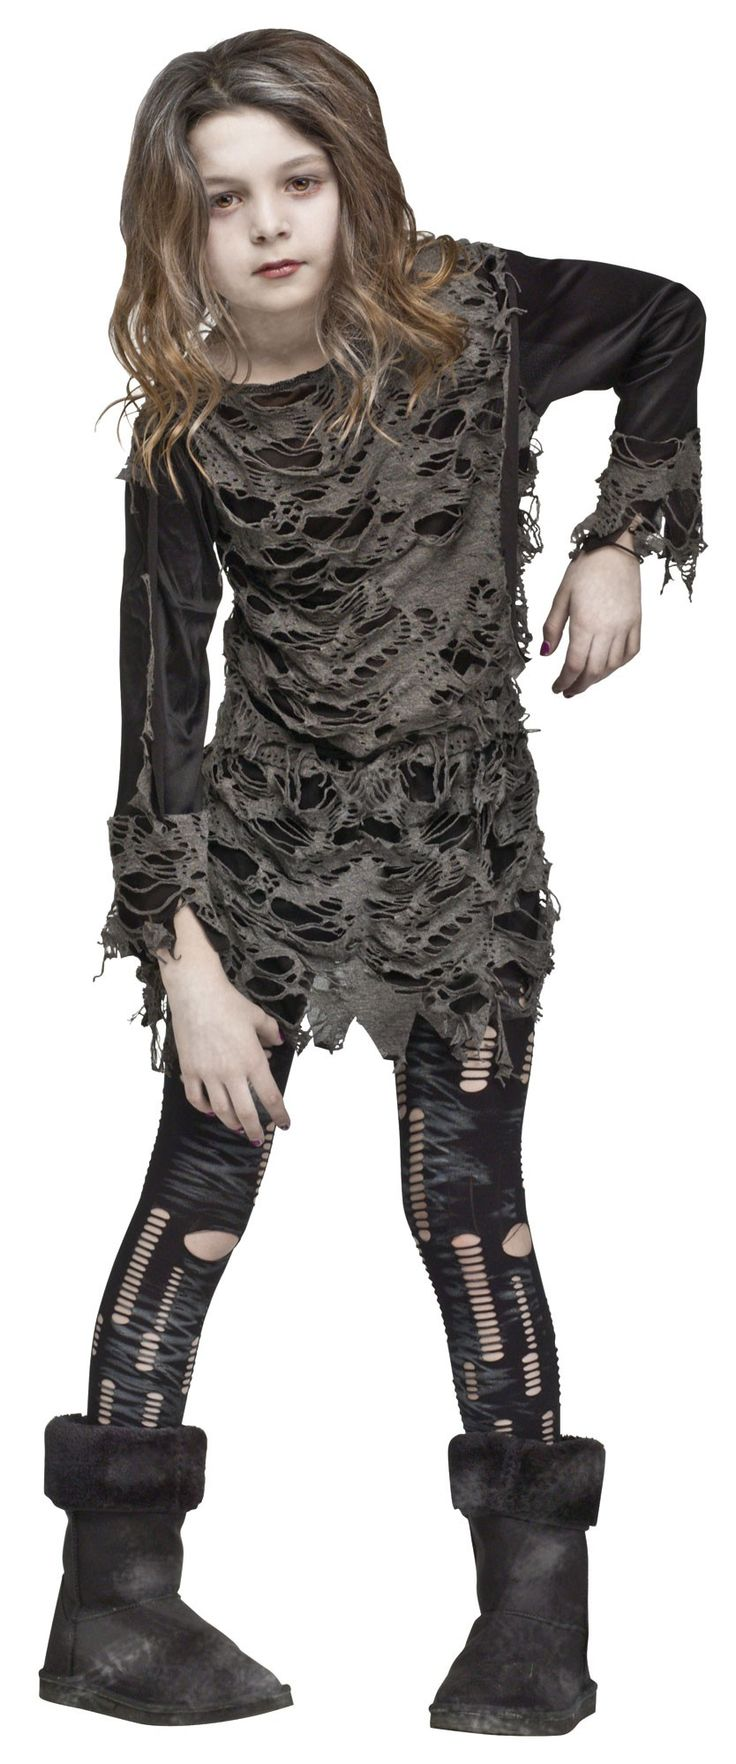 Walking Zombie Girl - This is a zombie girl costume. This is a two-piece costume with a dress and leggings. The dress is stretchy with a layer of tattered-looking grey fabric over the body of the dress and the cuffs. The cuffs and bottom of the dress have a zigzag torn-looking cut. From the shoulders and the sides of the waist are pieces of attached fabric. #halloween #zombie #girls #children #kids #yyc #calgary #costume